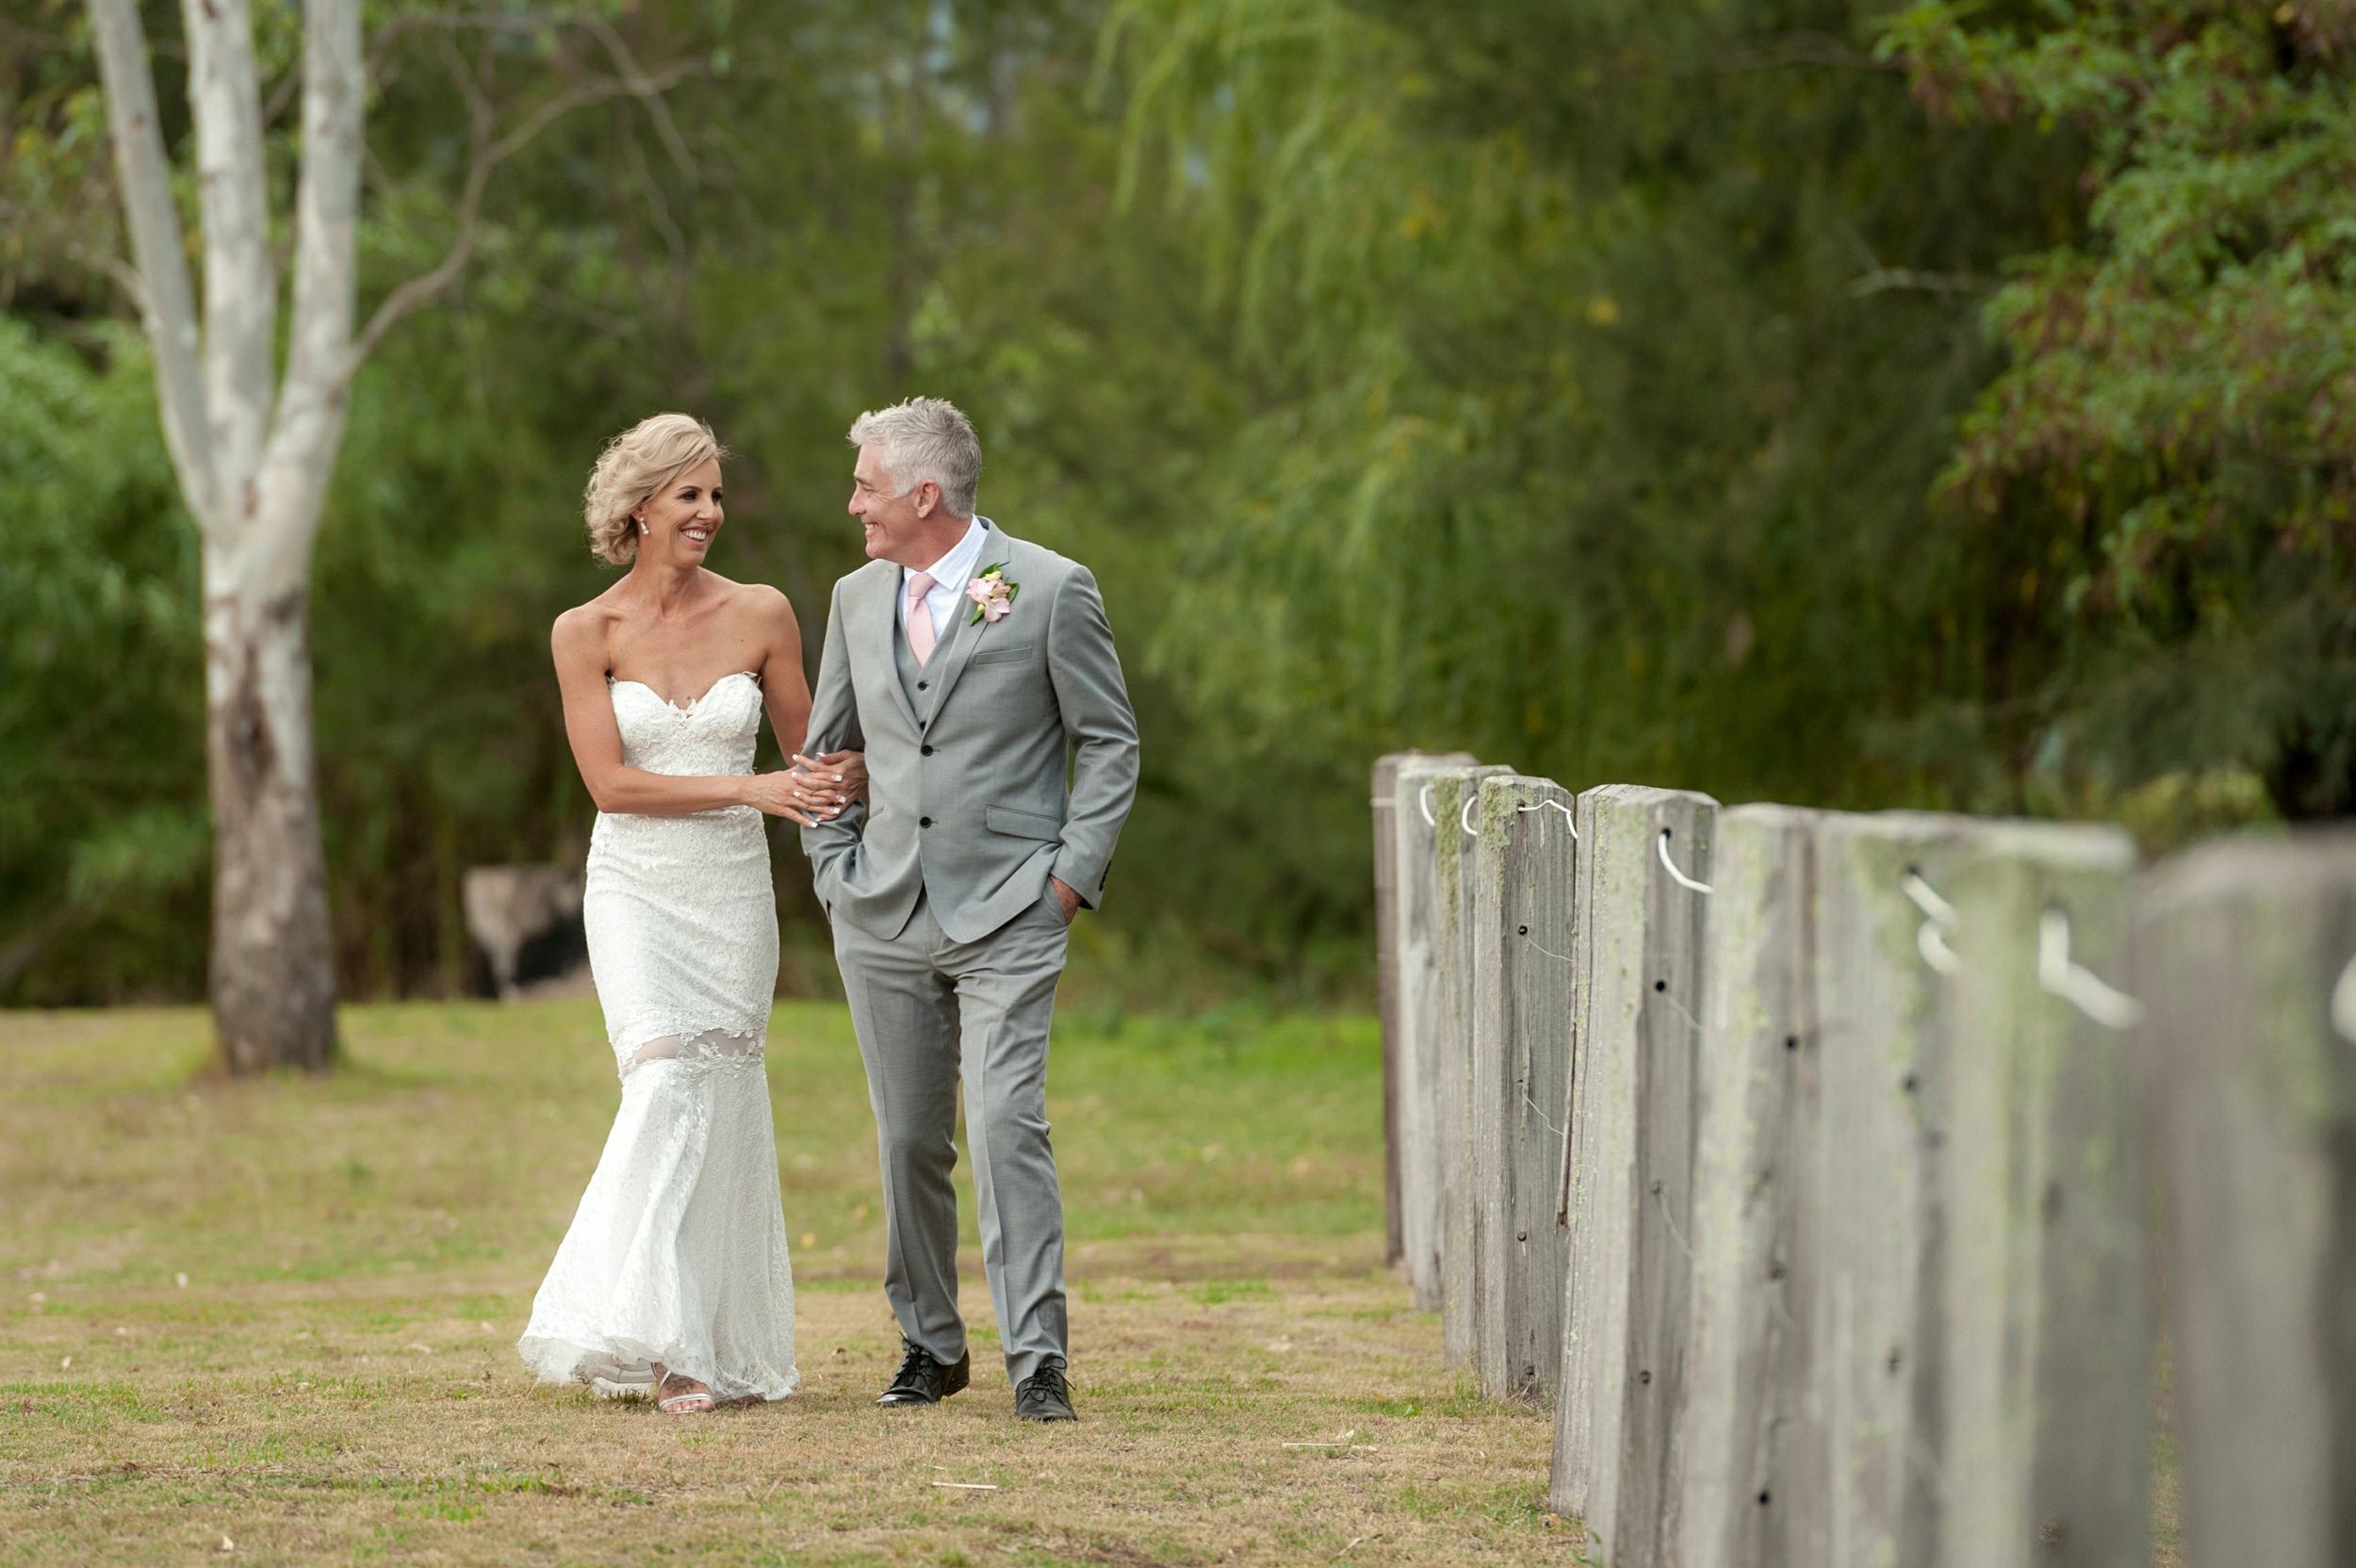 cnj-photography_Dave-&-Kellie36.jpg